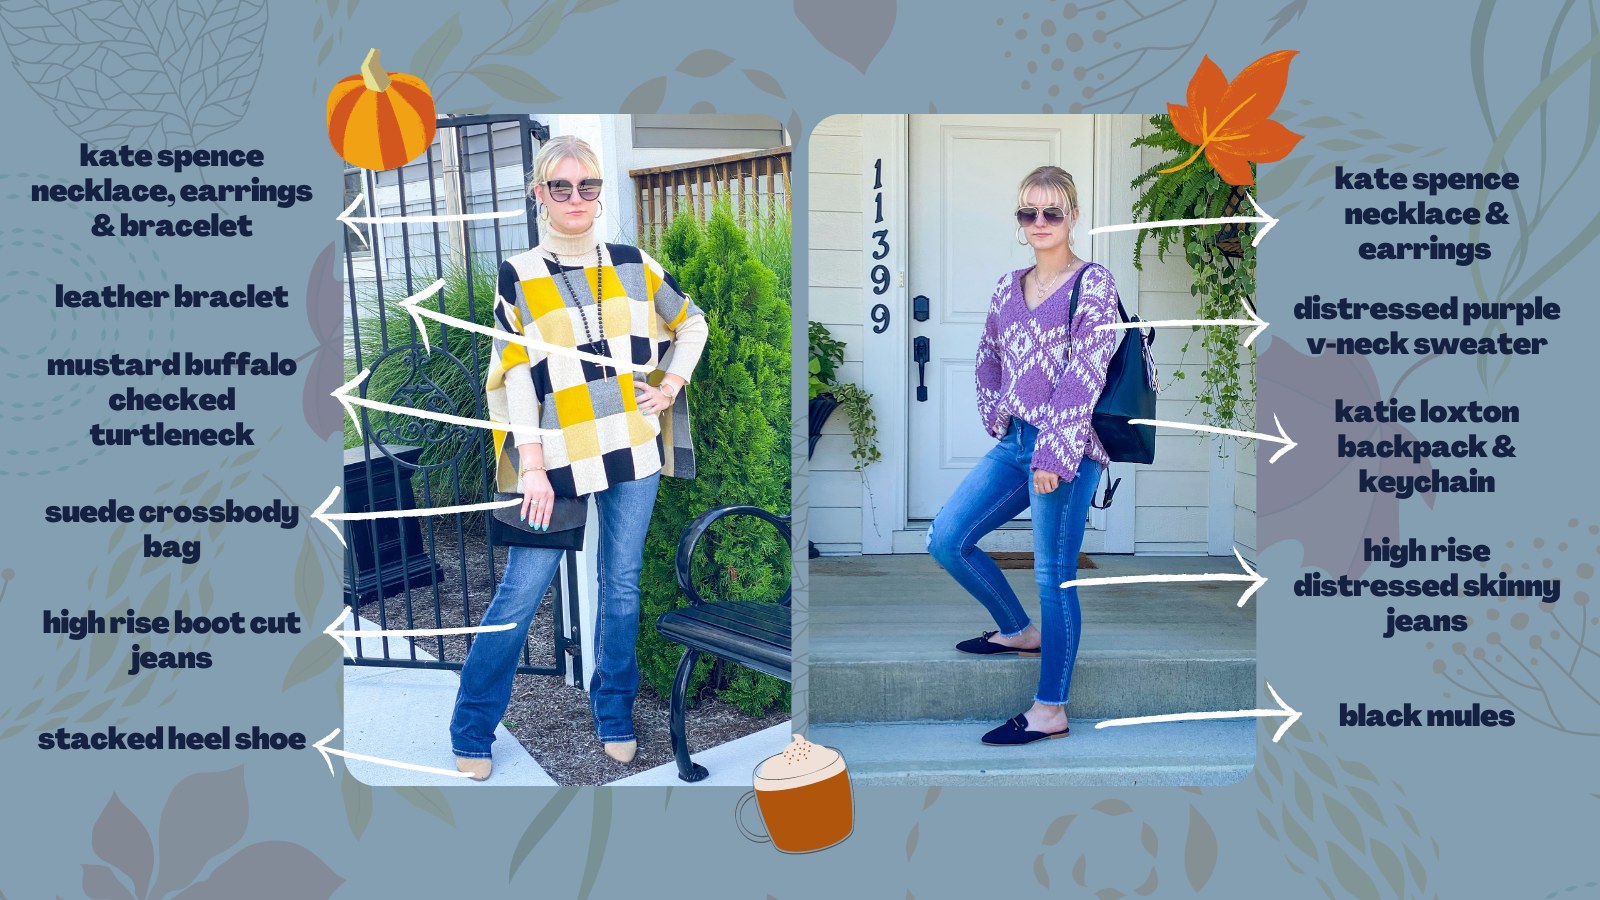 two photos of a woman wearing a sweater with jeans